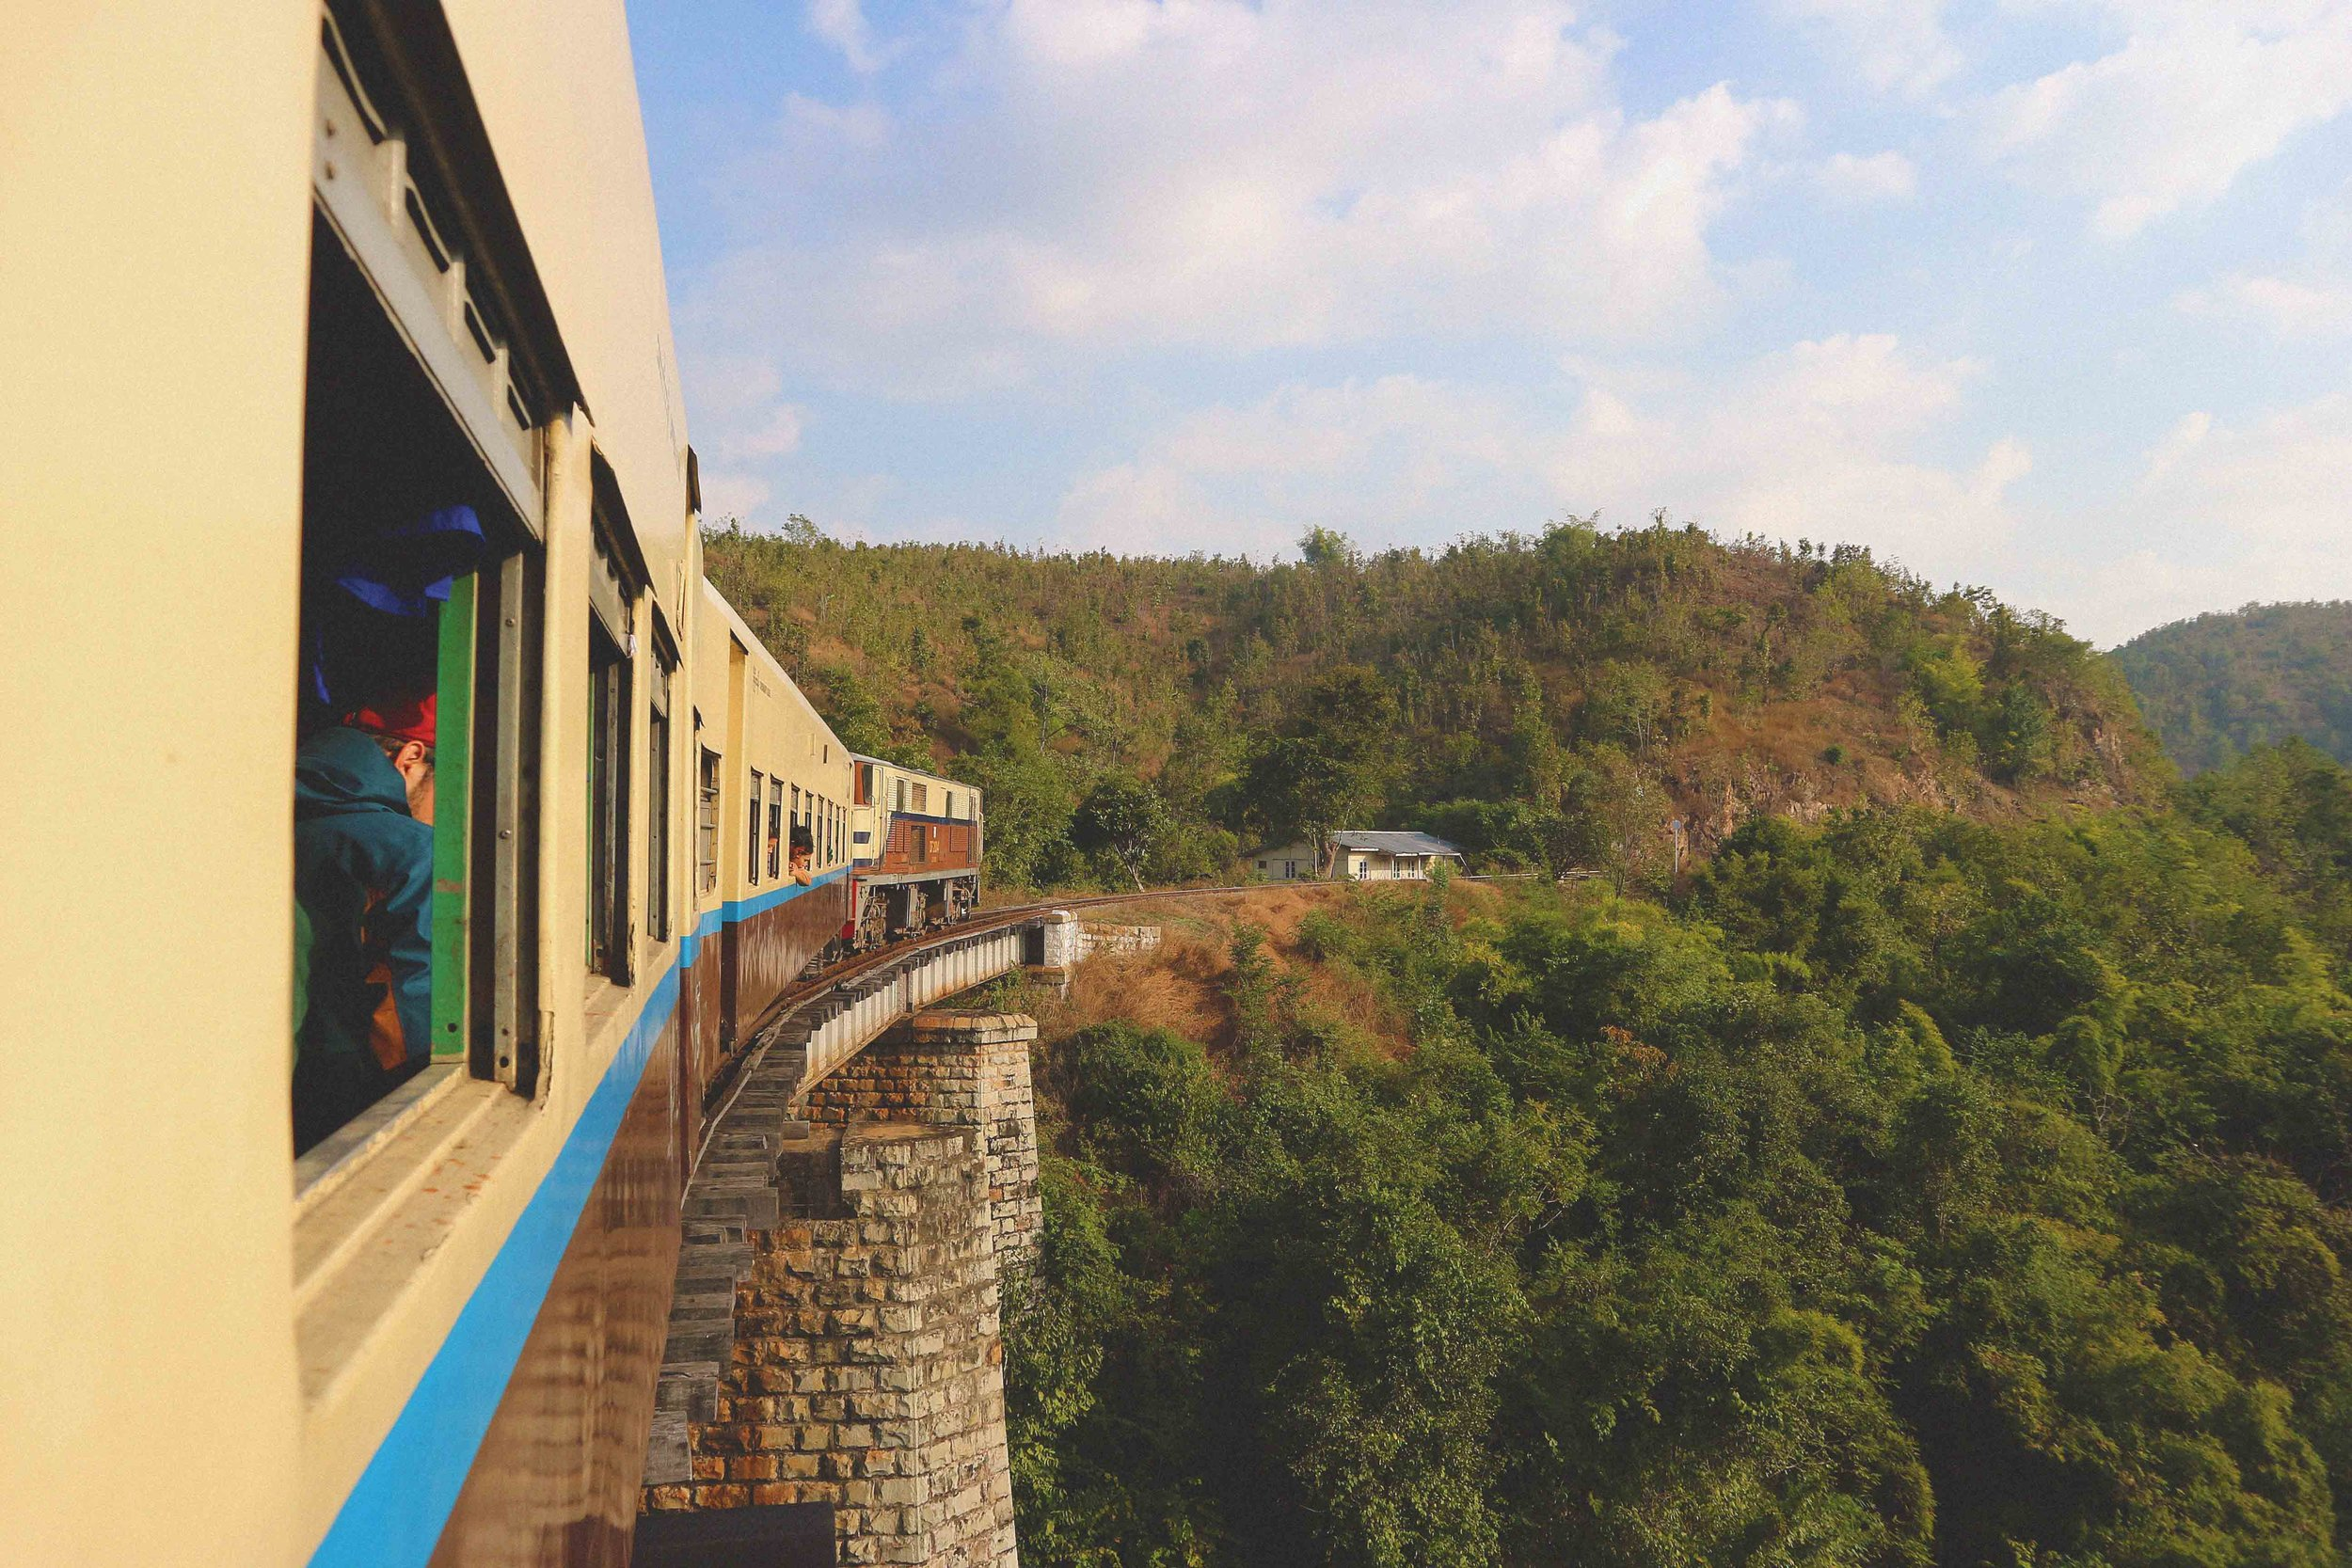 The epic train journey from Thazi to Kalaw